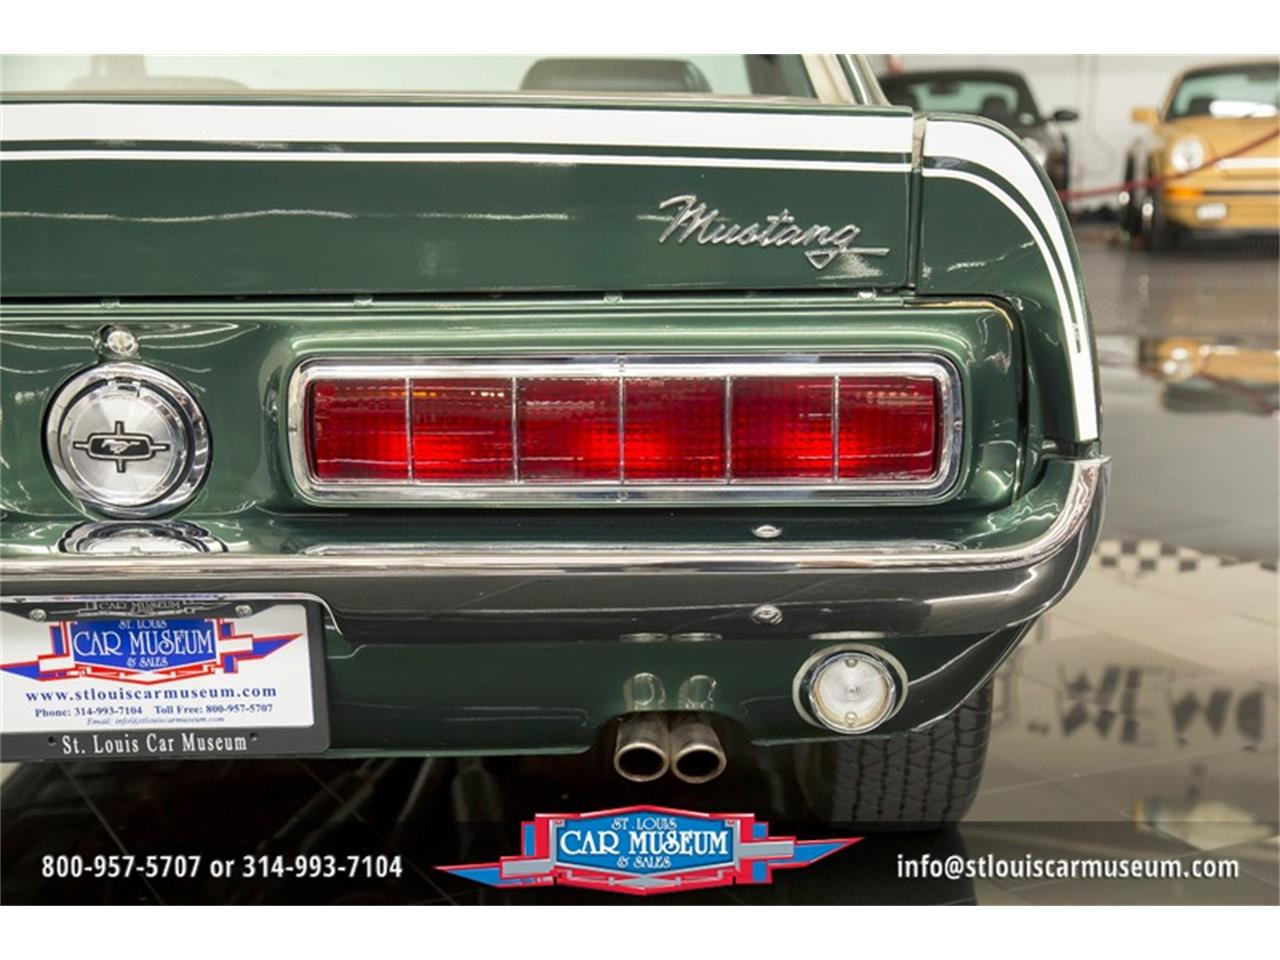 Large Picture of 1968 Mustang GT/CS (California Special) located in Missouri - $59,900.00 Offered by St. Louis Car Museum - LWVZ